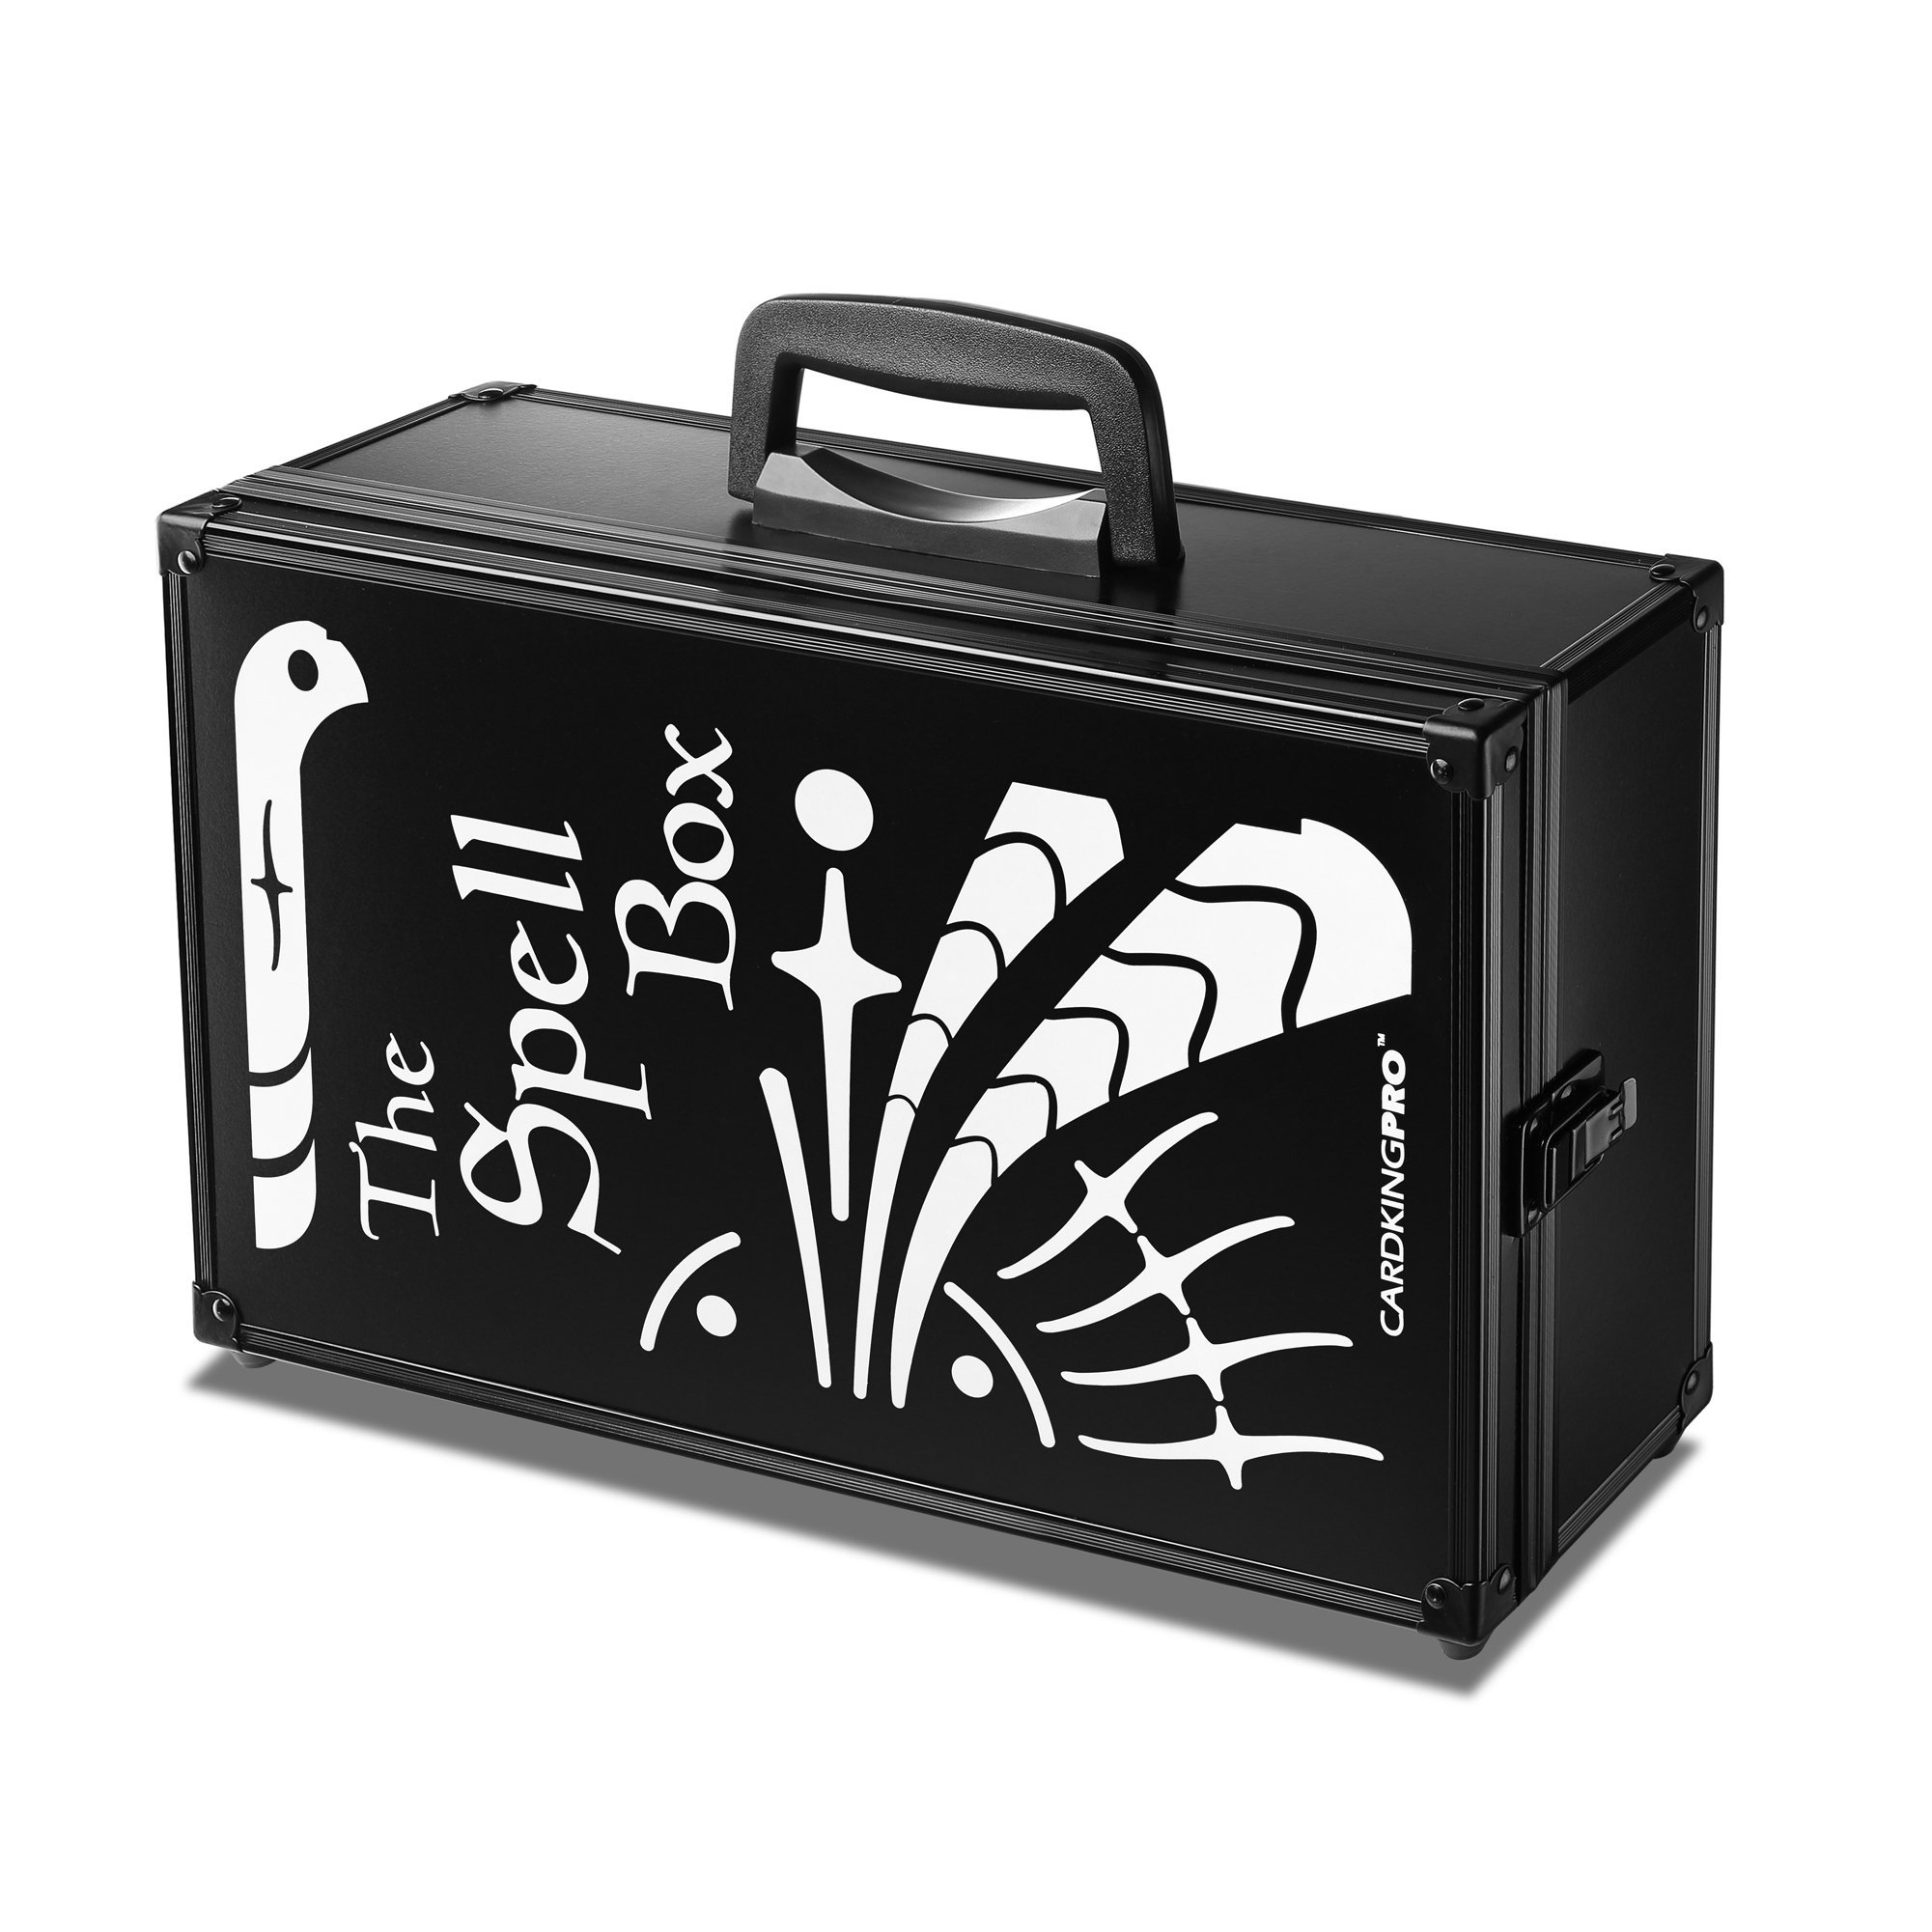 Cardkingpro RPG Game Storage Case BBB Large With The Spell Box Logo